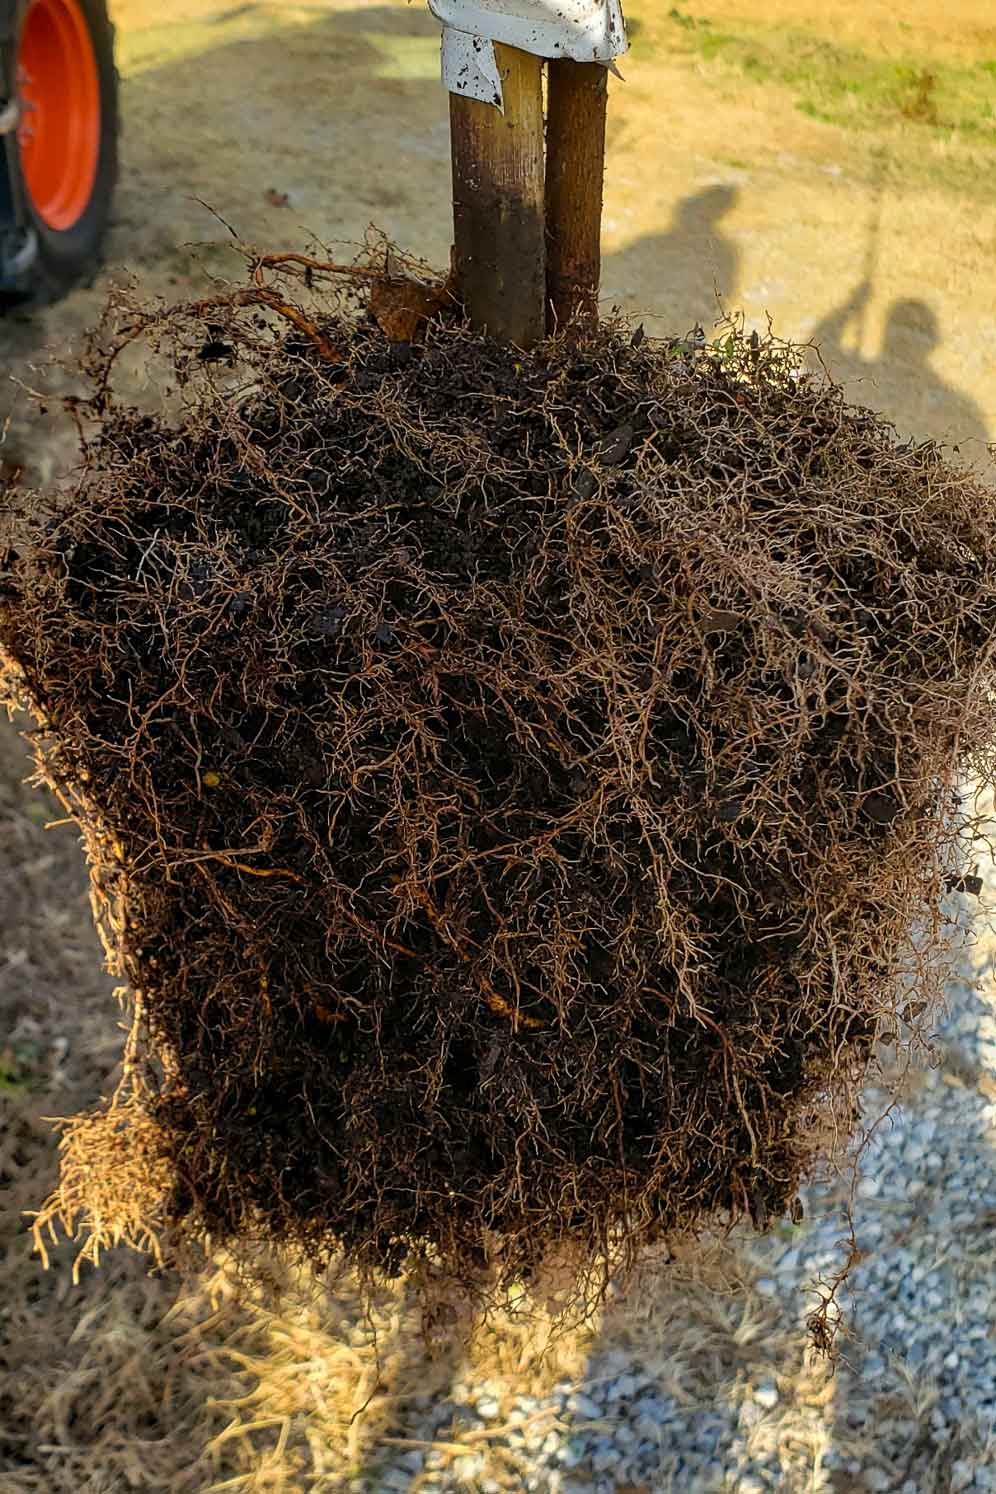 Image of roots developed through RediRoot air pruning pots